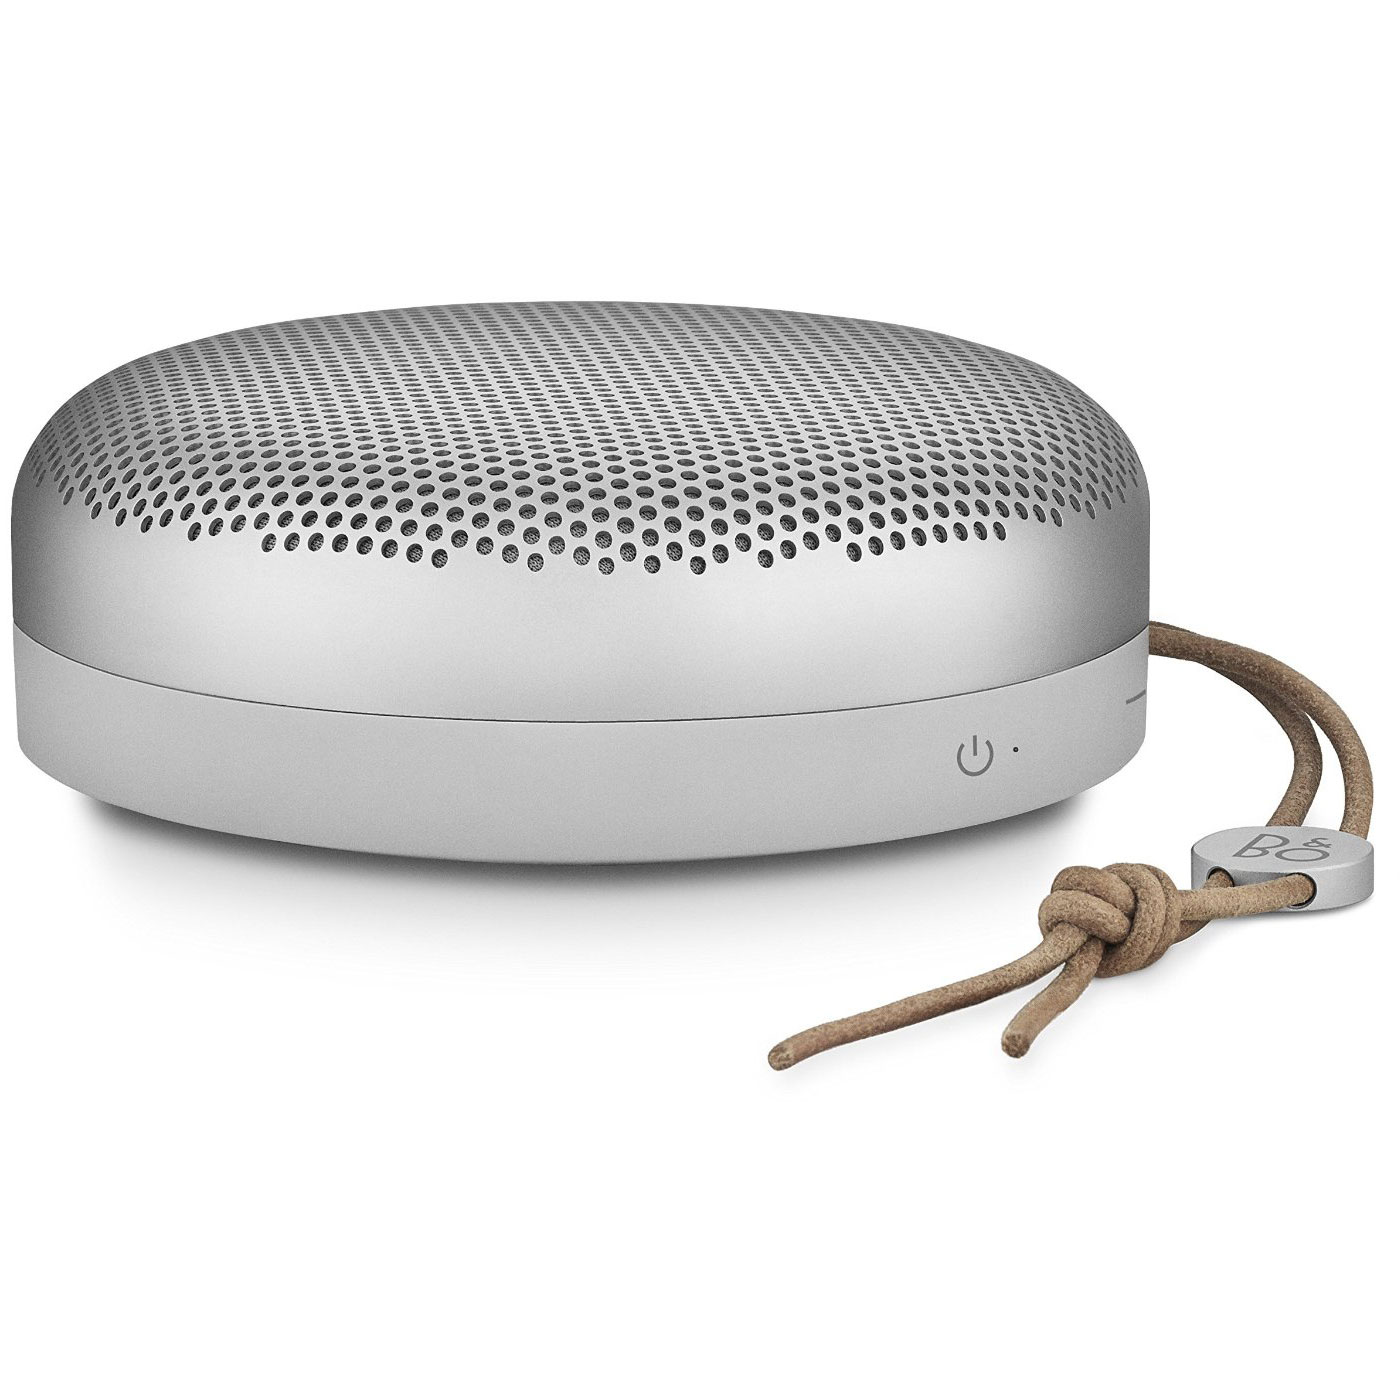 Dock & Enceinte Bluetooth B&O Play Beoplay A1 Naturel Enceinte stéréo Bluetooth portable (2 x 30 W)